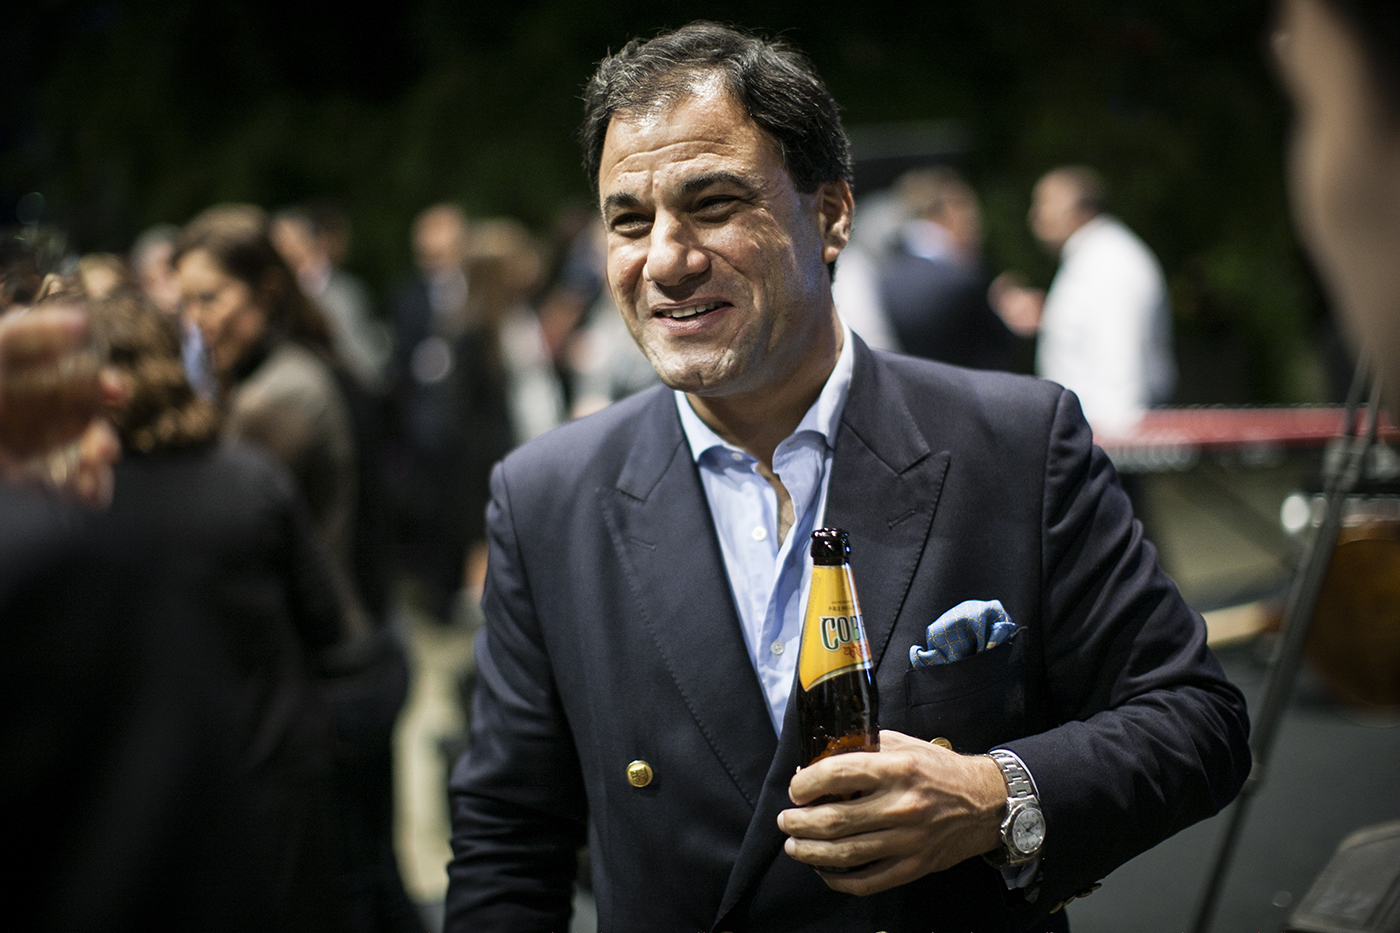 Lord Bilimoria, posing with a bottle of Cobra Beer.